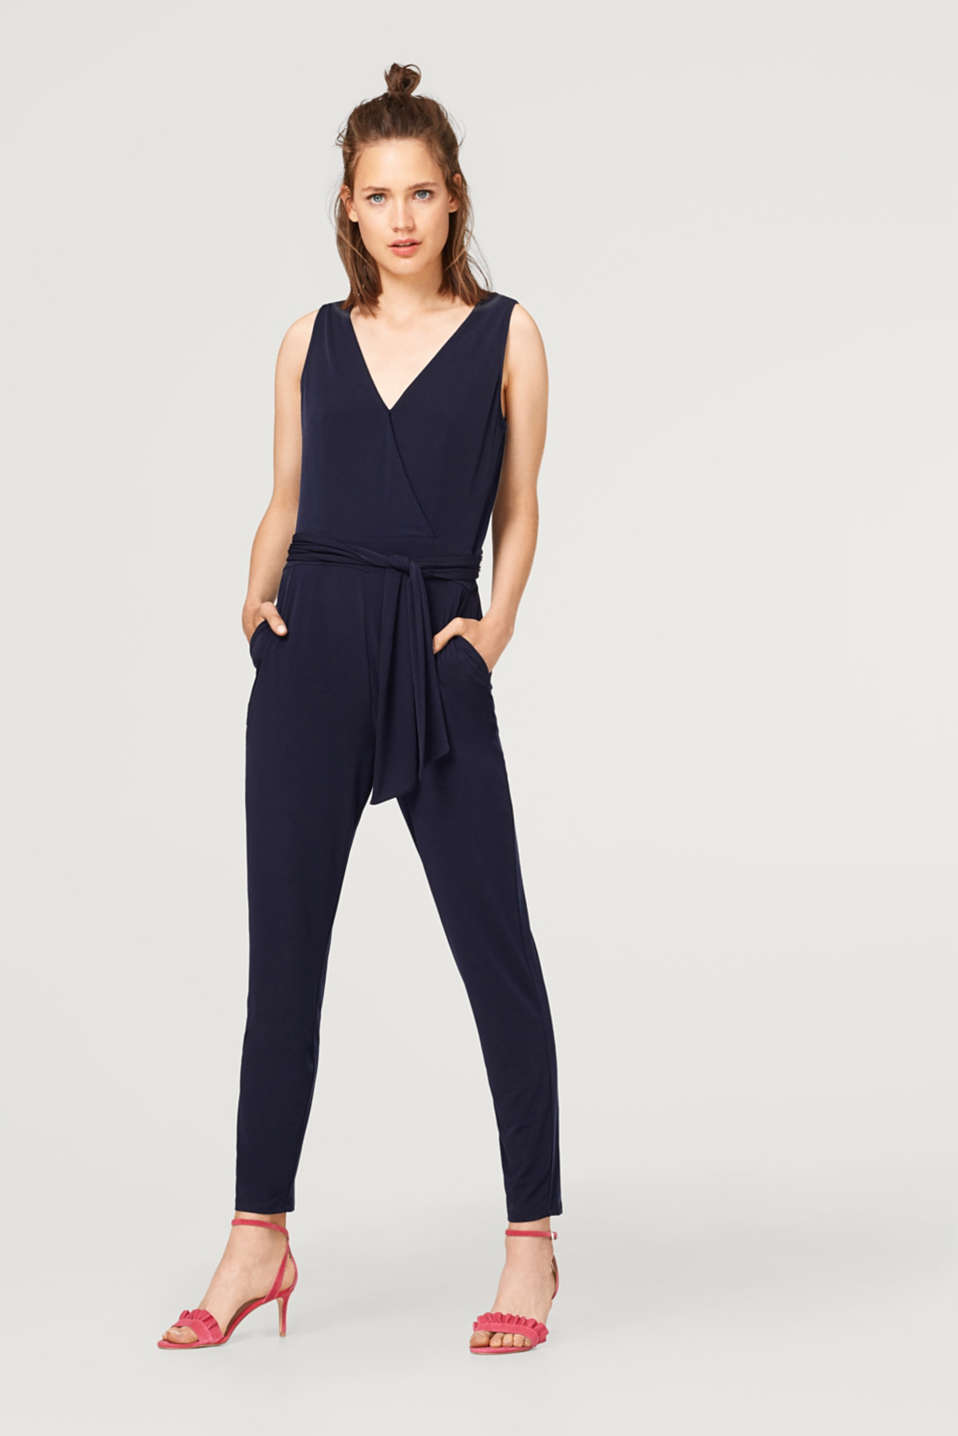 Esprit - Stretch jersey jumpsuit with a lace back